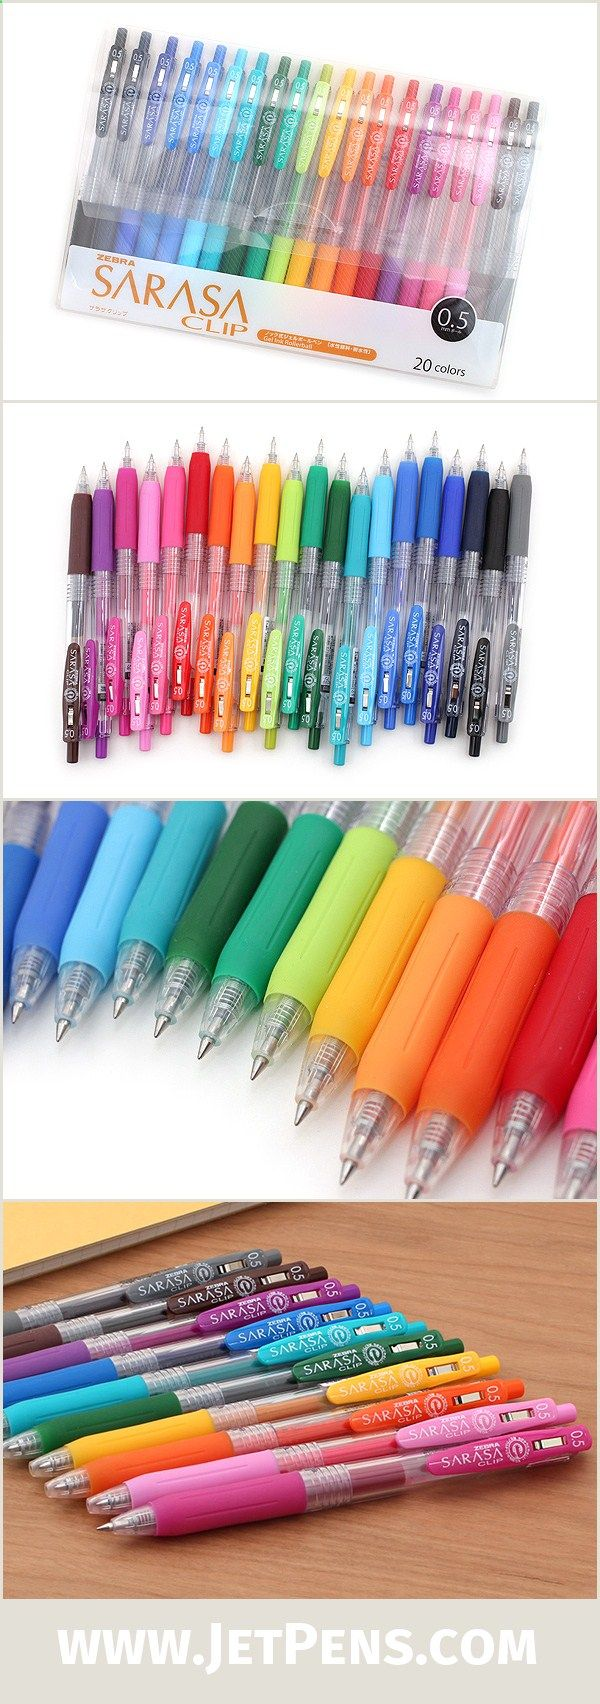 The popular Zebra Sarasa Push Clip Gel Pens now come in a box set of 20 colors -- the perfect gift for students and doodlers!